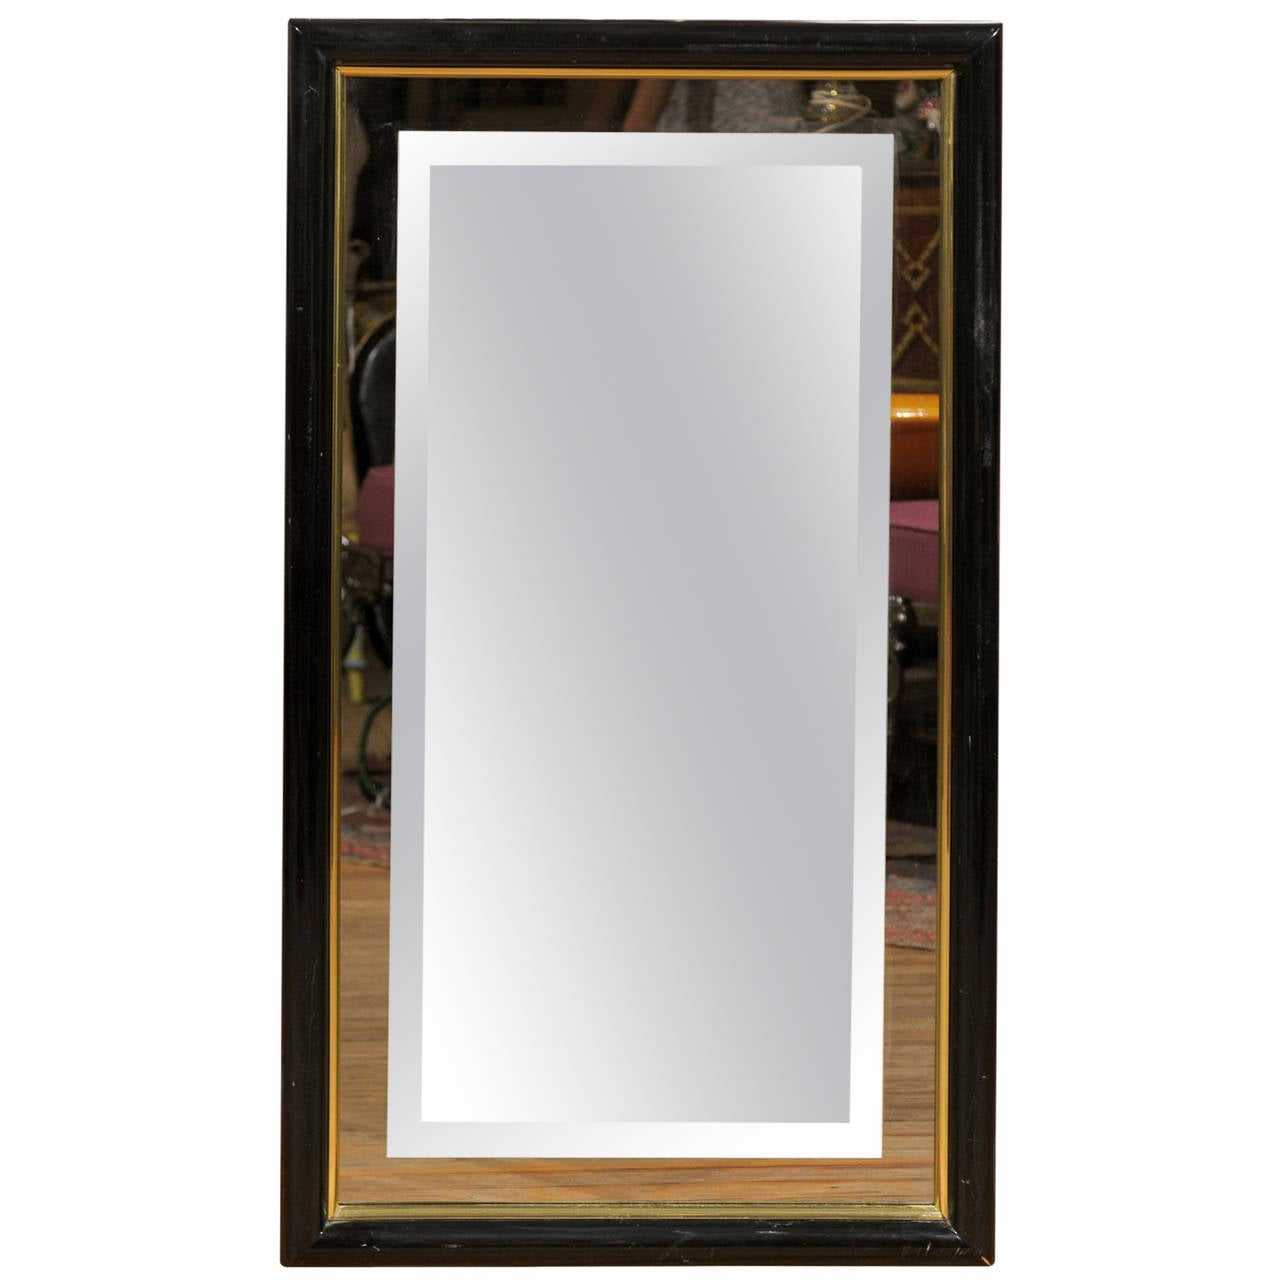 Smoked And Beveled Glass Wall Mirror In A Black And Brass Frame For Sale At 1stdibs